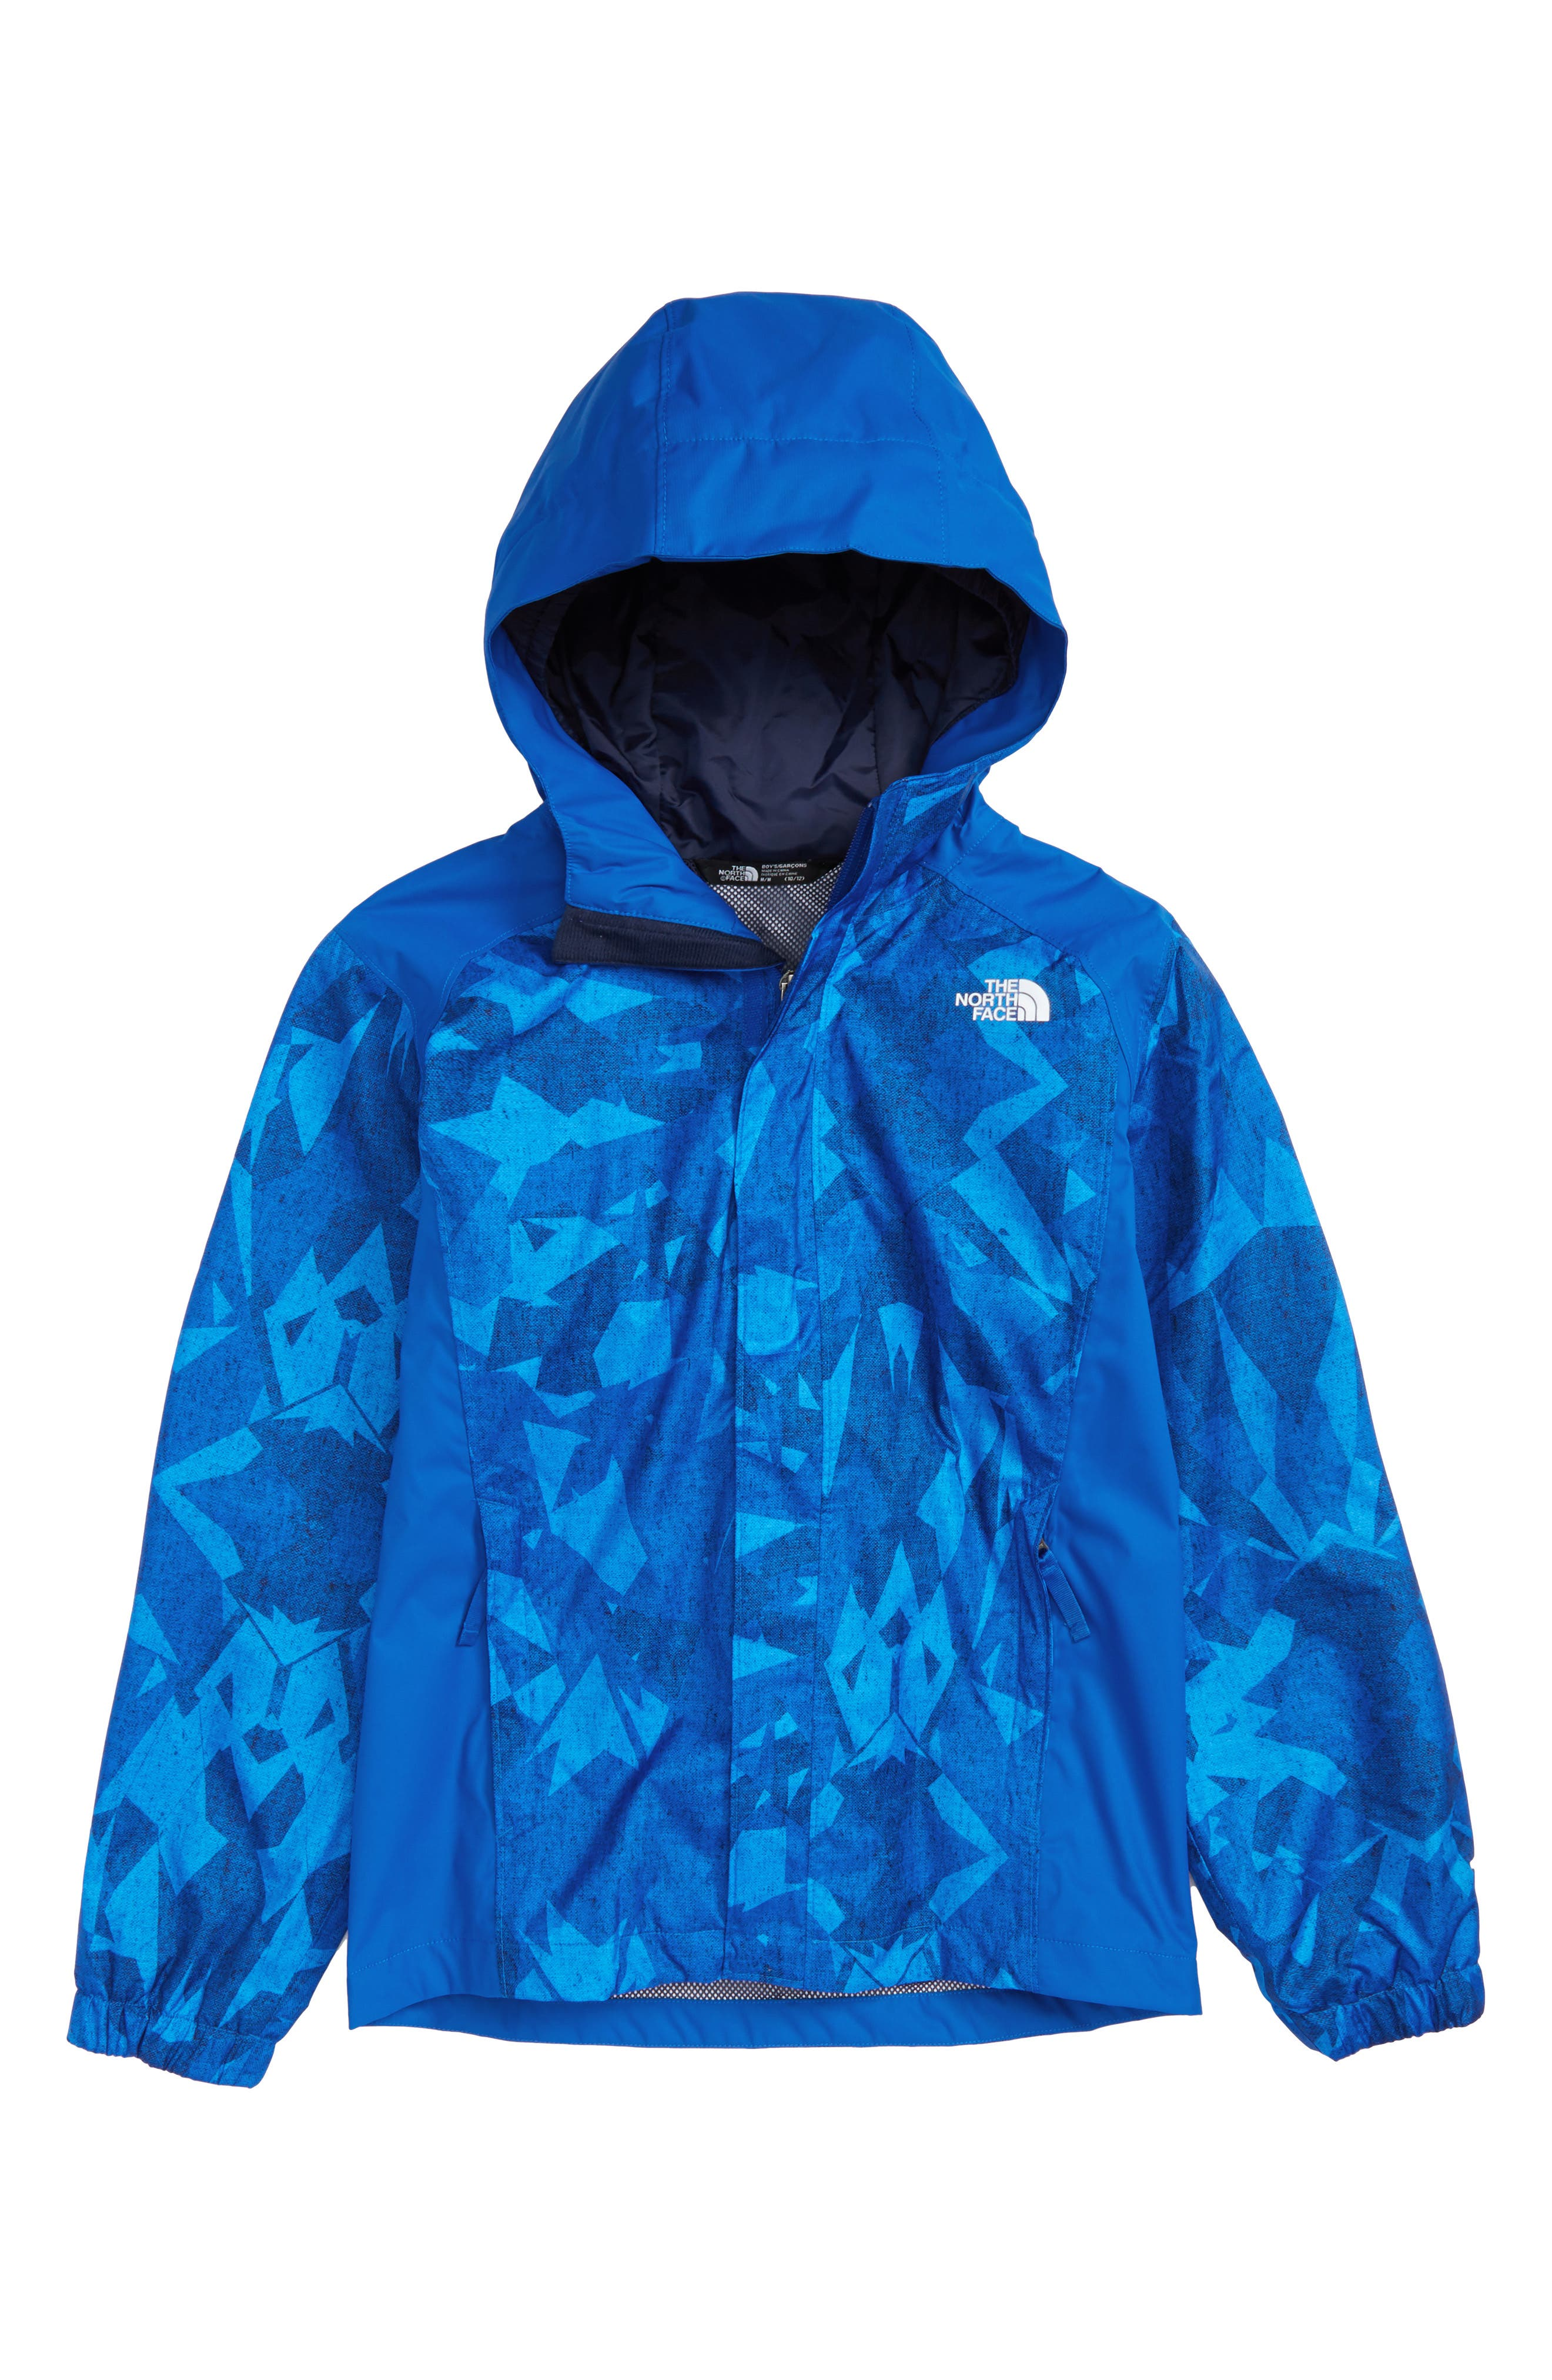 Alternate Image 1 Selected - The North Face 'Resolve' Waterproof Jacket (Little Boys & Big Boys)